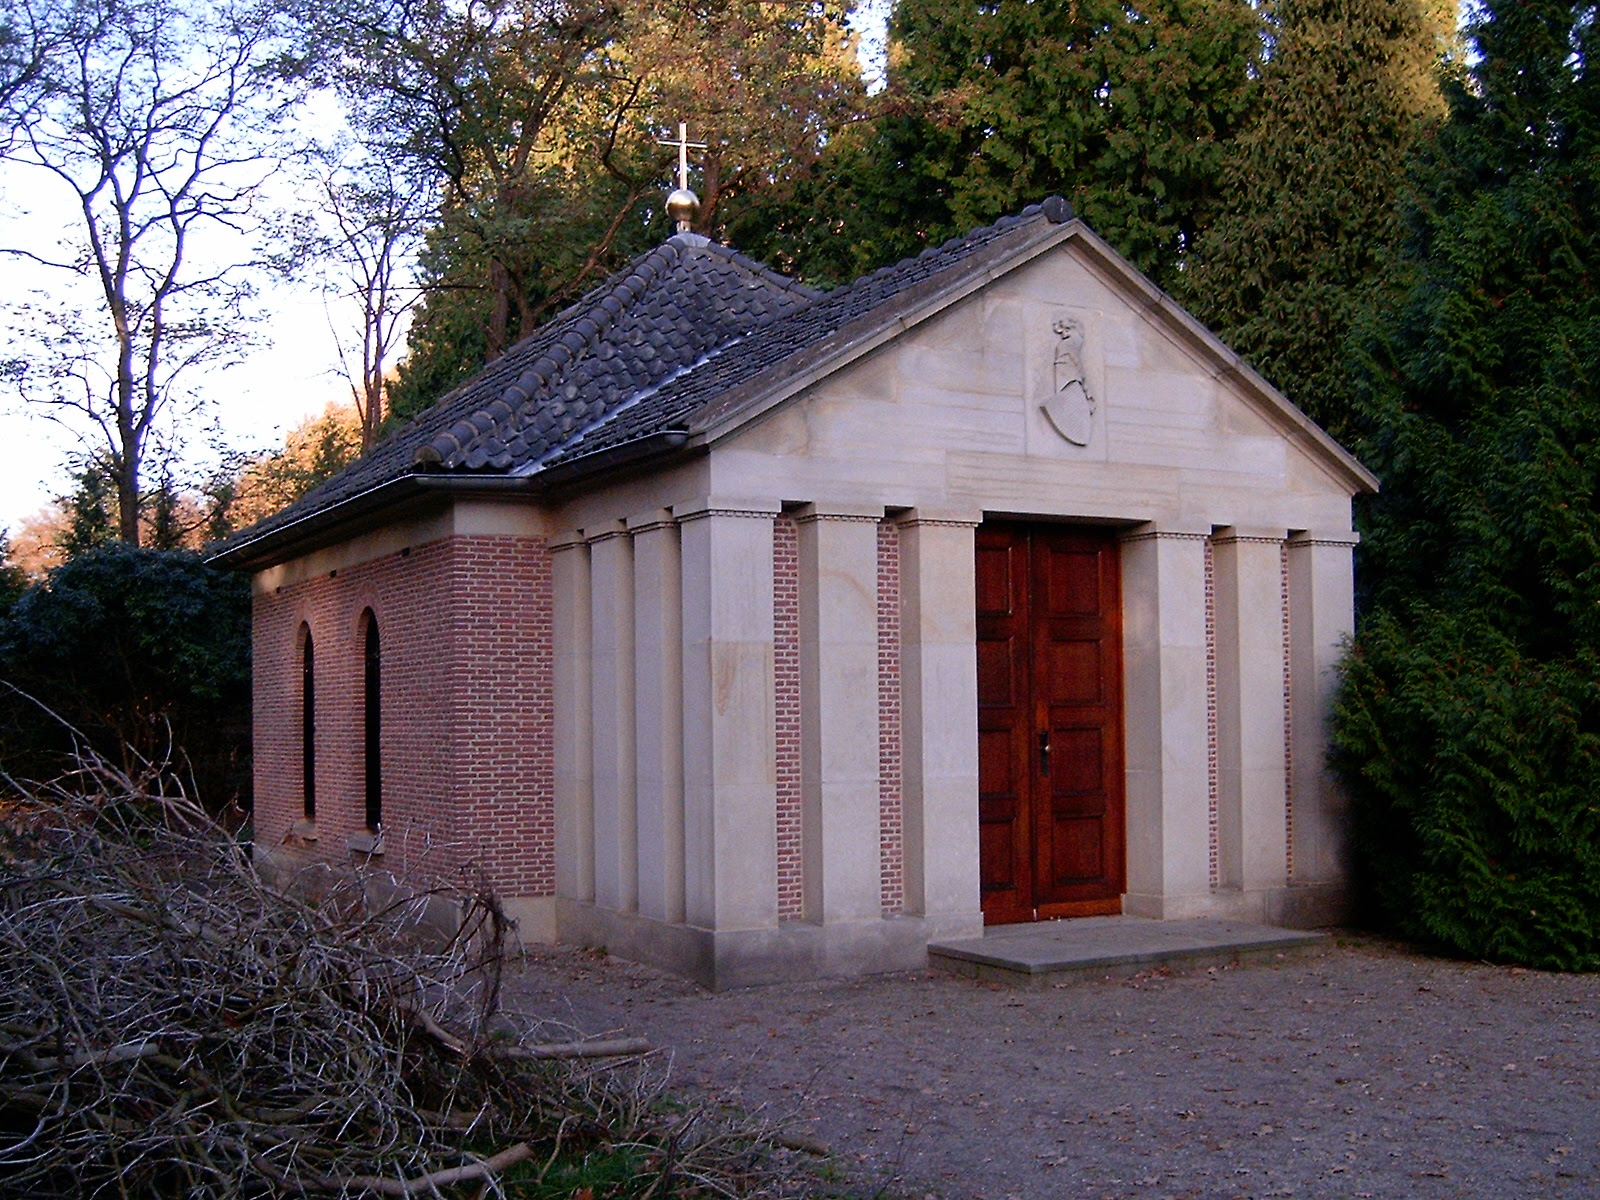 The tomb of His Imperial Majesty Wilhelm II